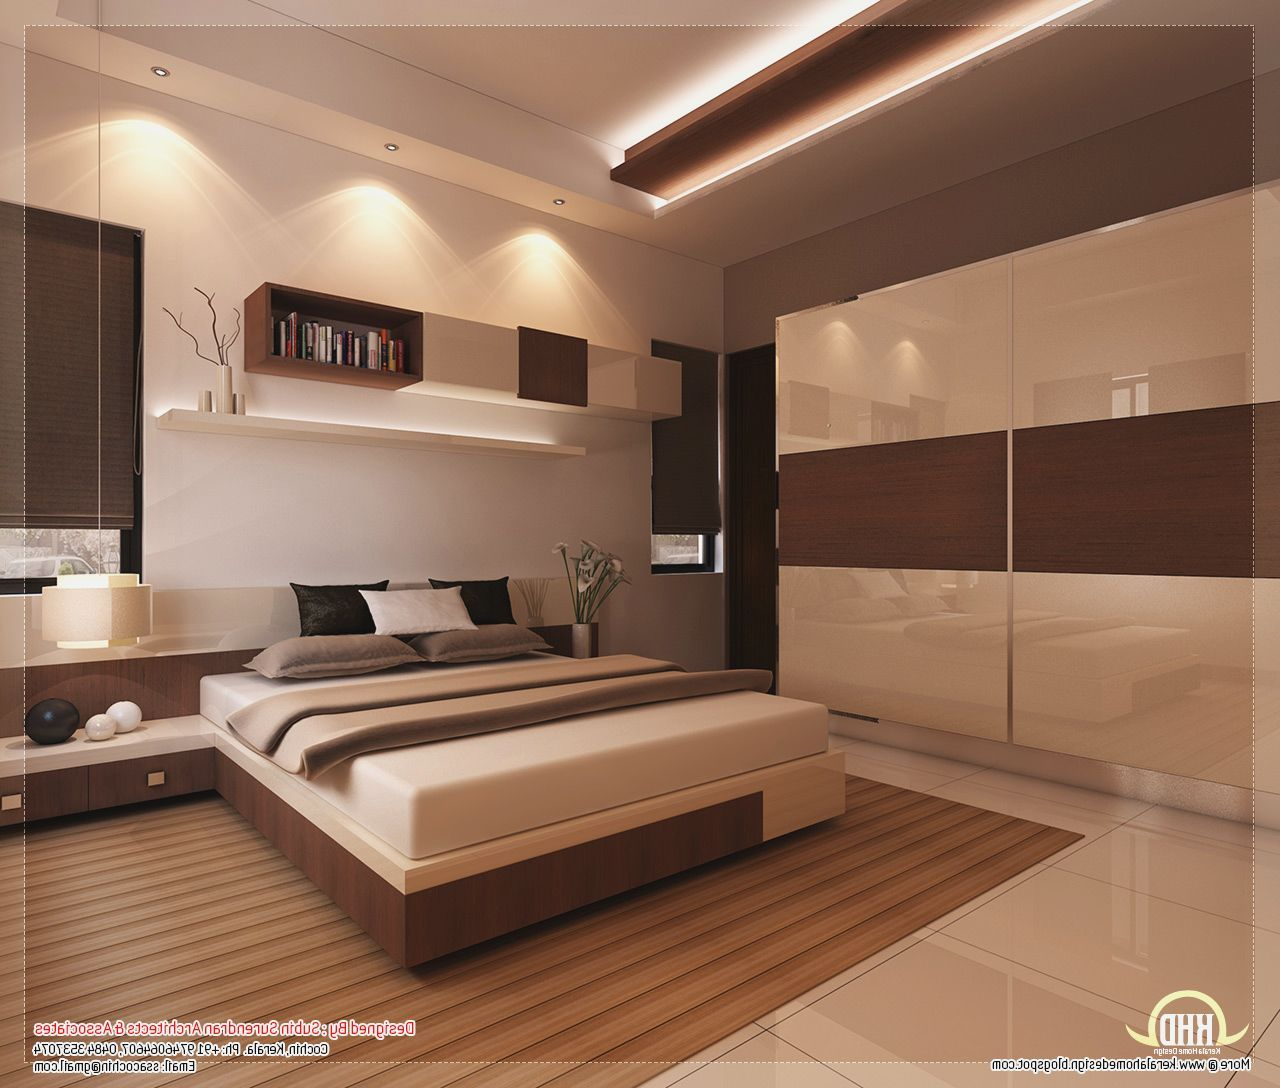 Bedroom designs india low cost more picture bedroom - Interior design for bedroom in india ...